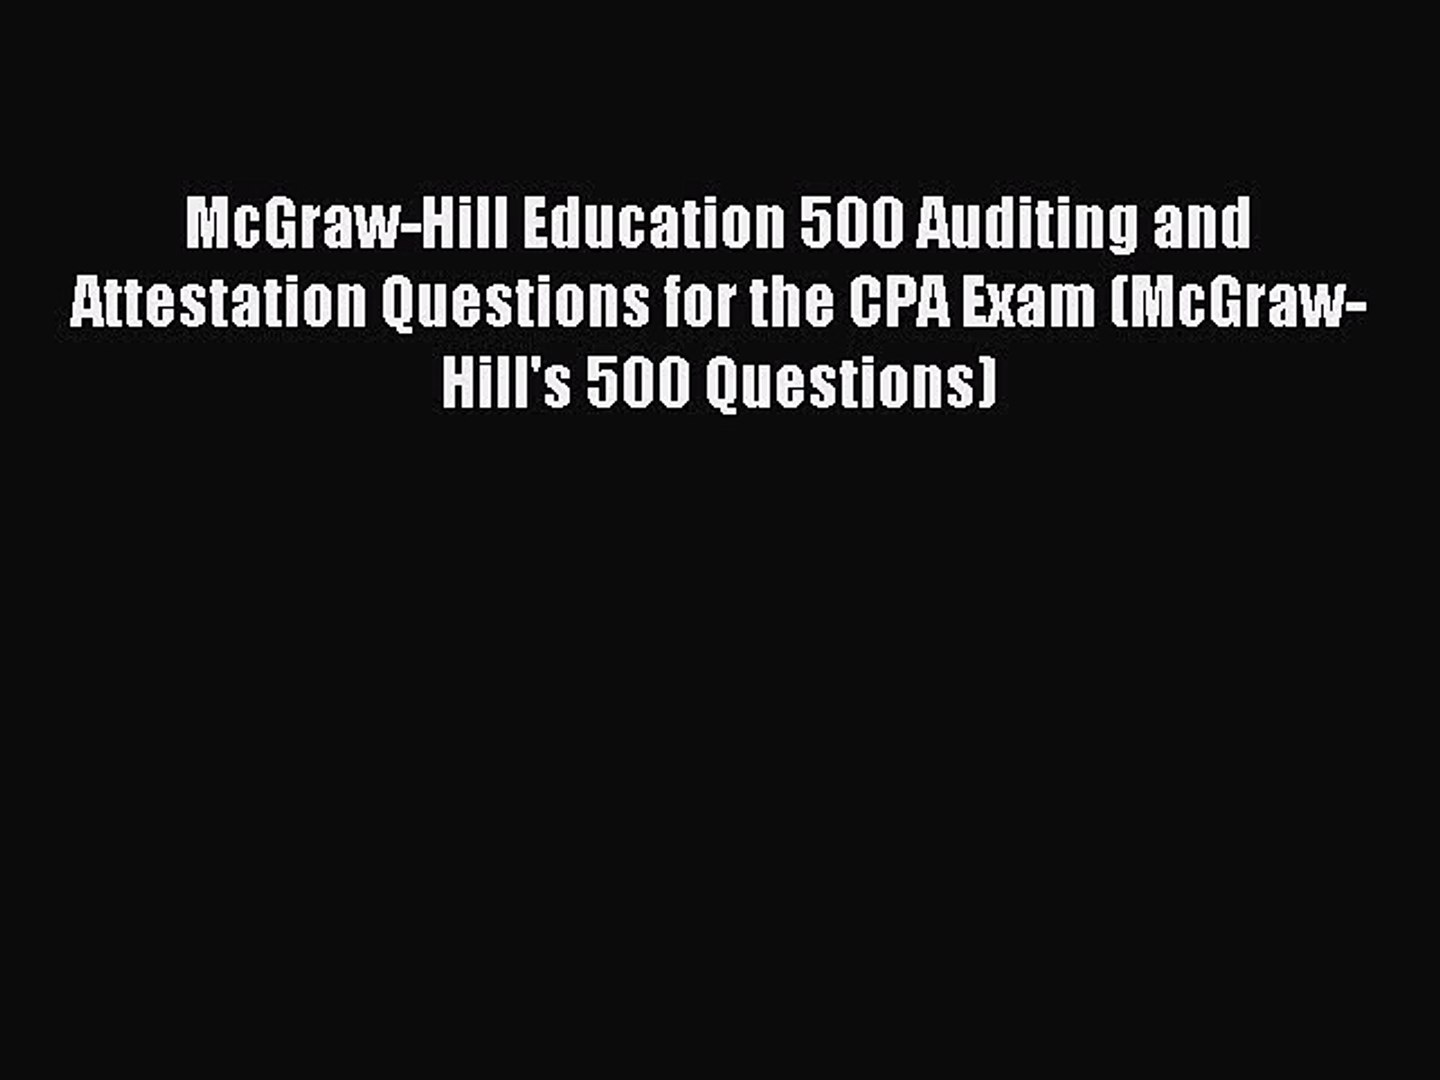 Read McGraw-Hill Education 500 Auditing and Attestation Questions for the  CPA Exam (McGraw-Hill's